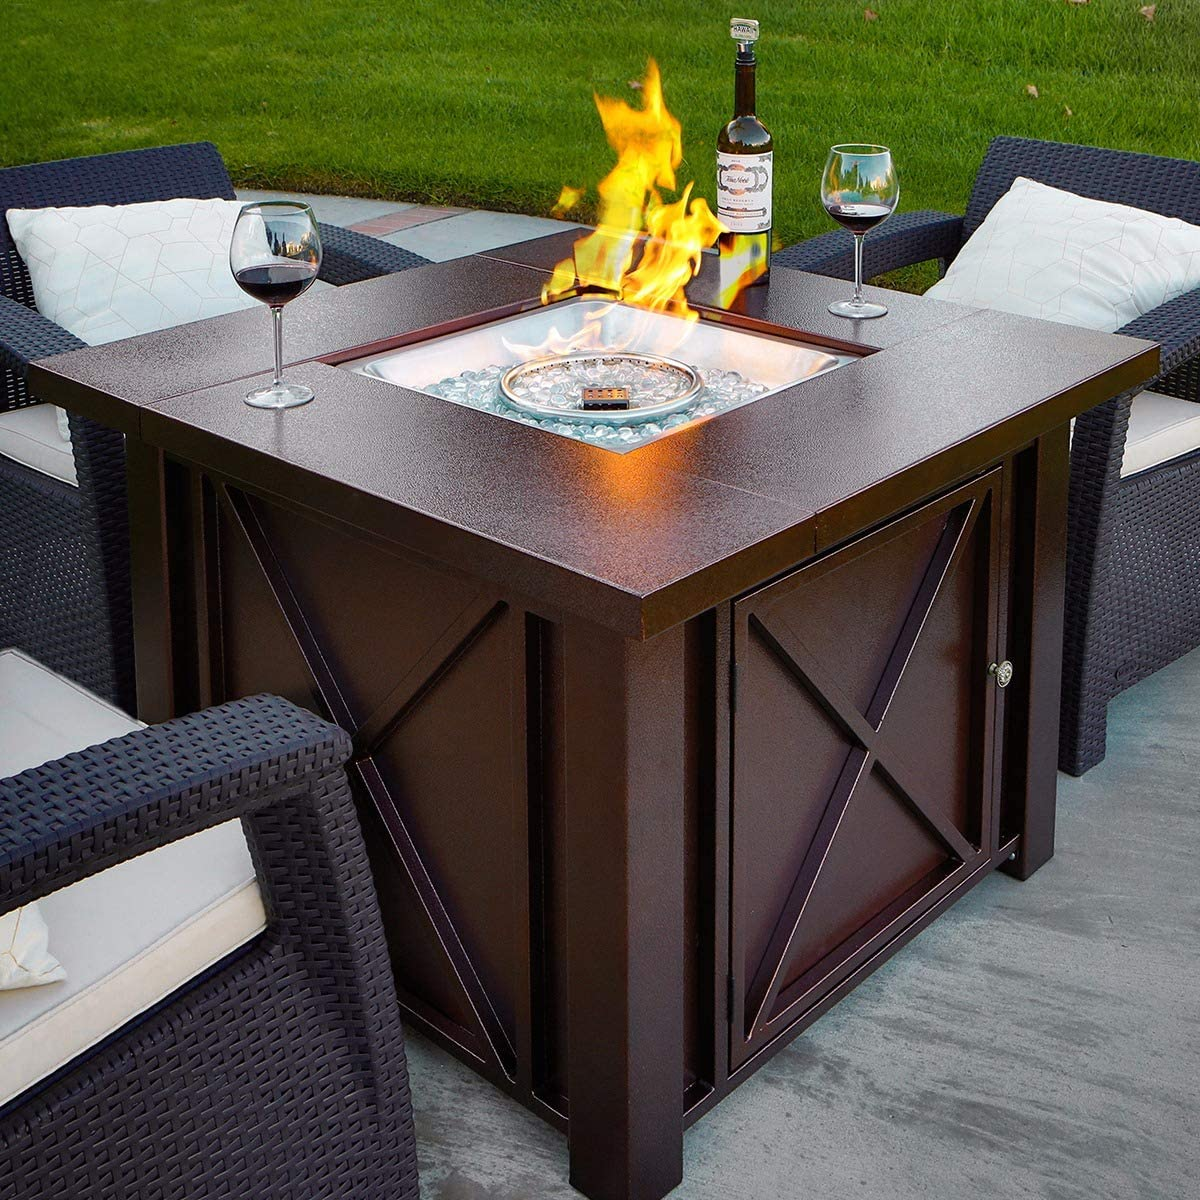 xtremepowerus new lpg fire pit table